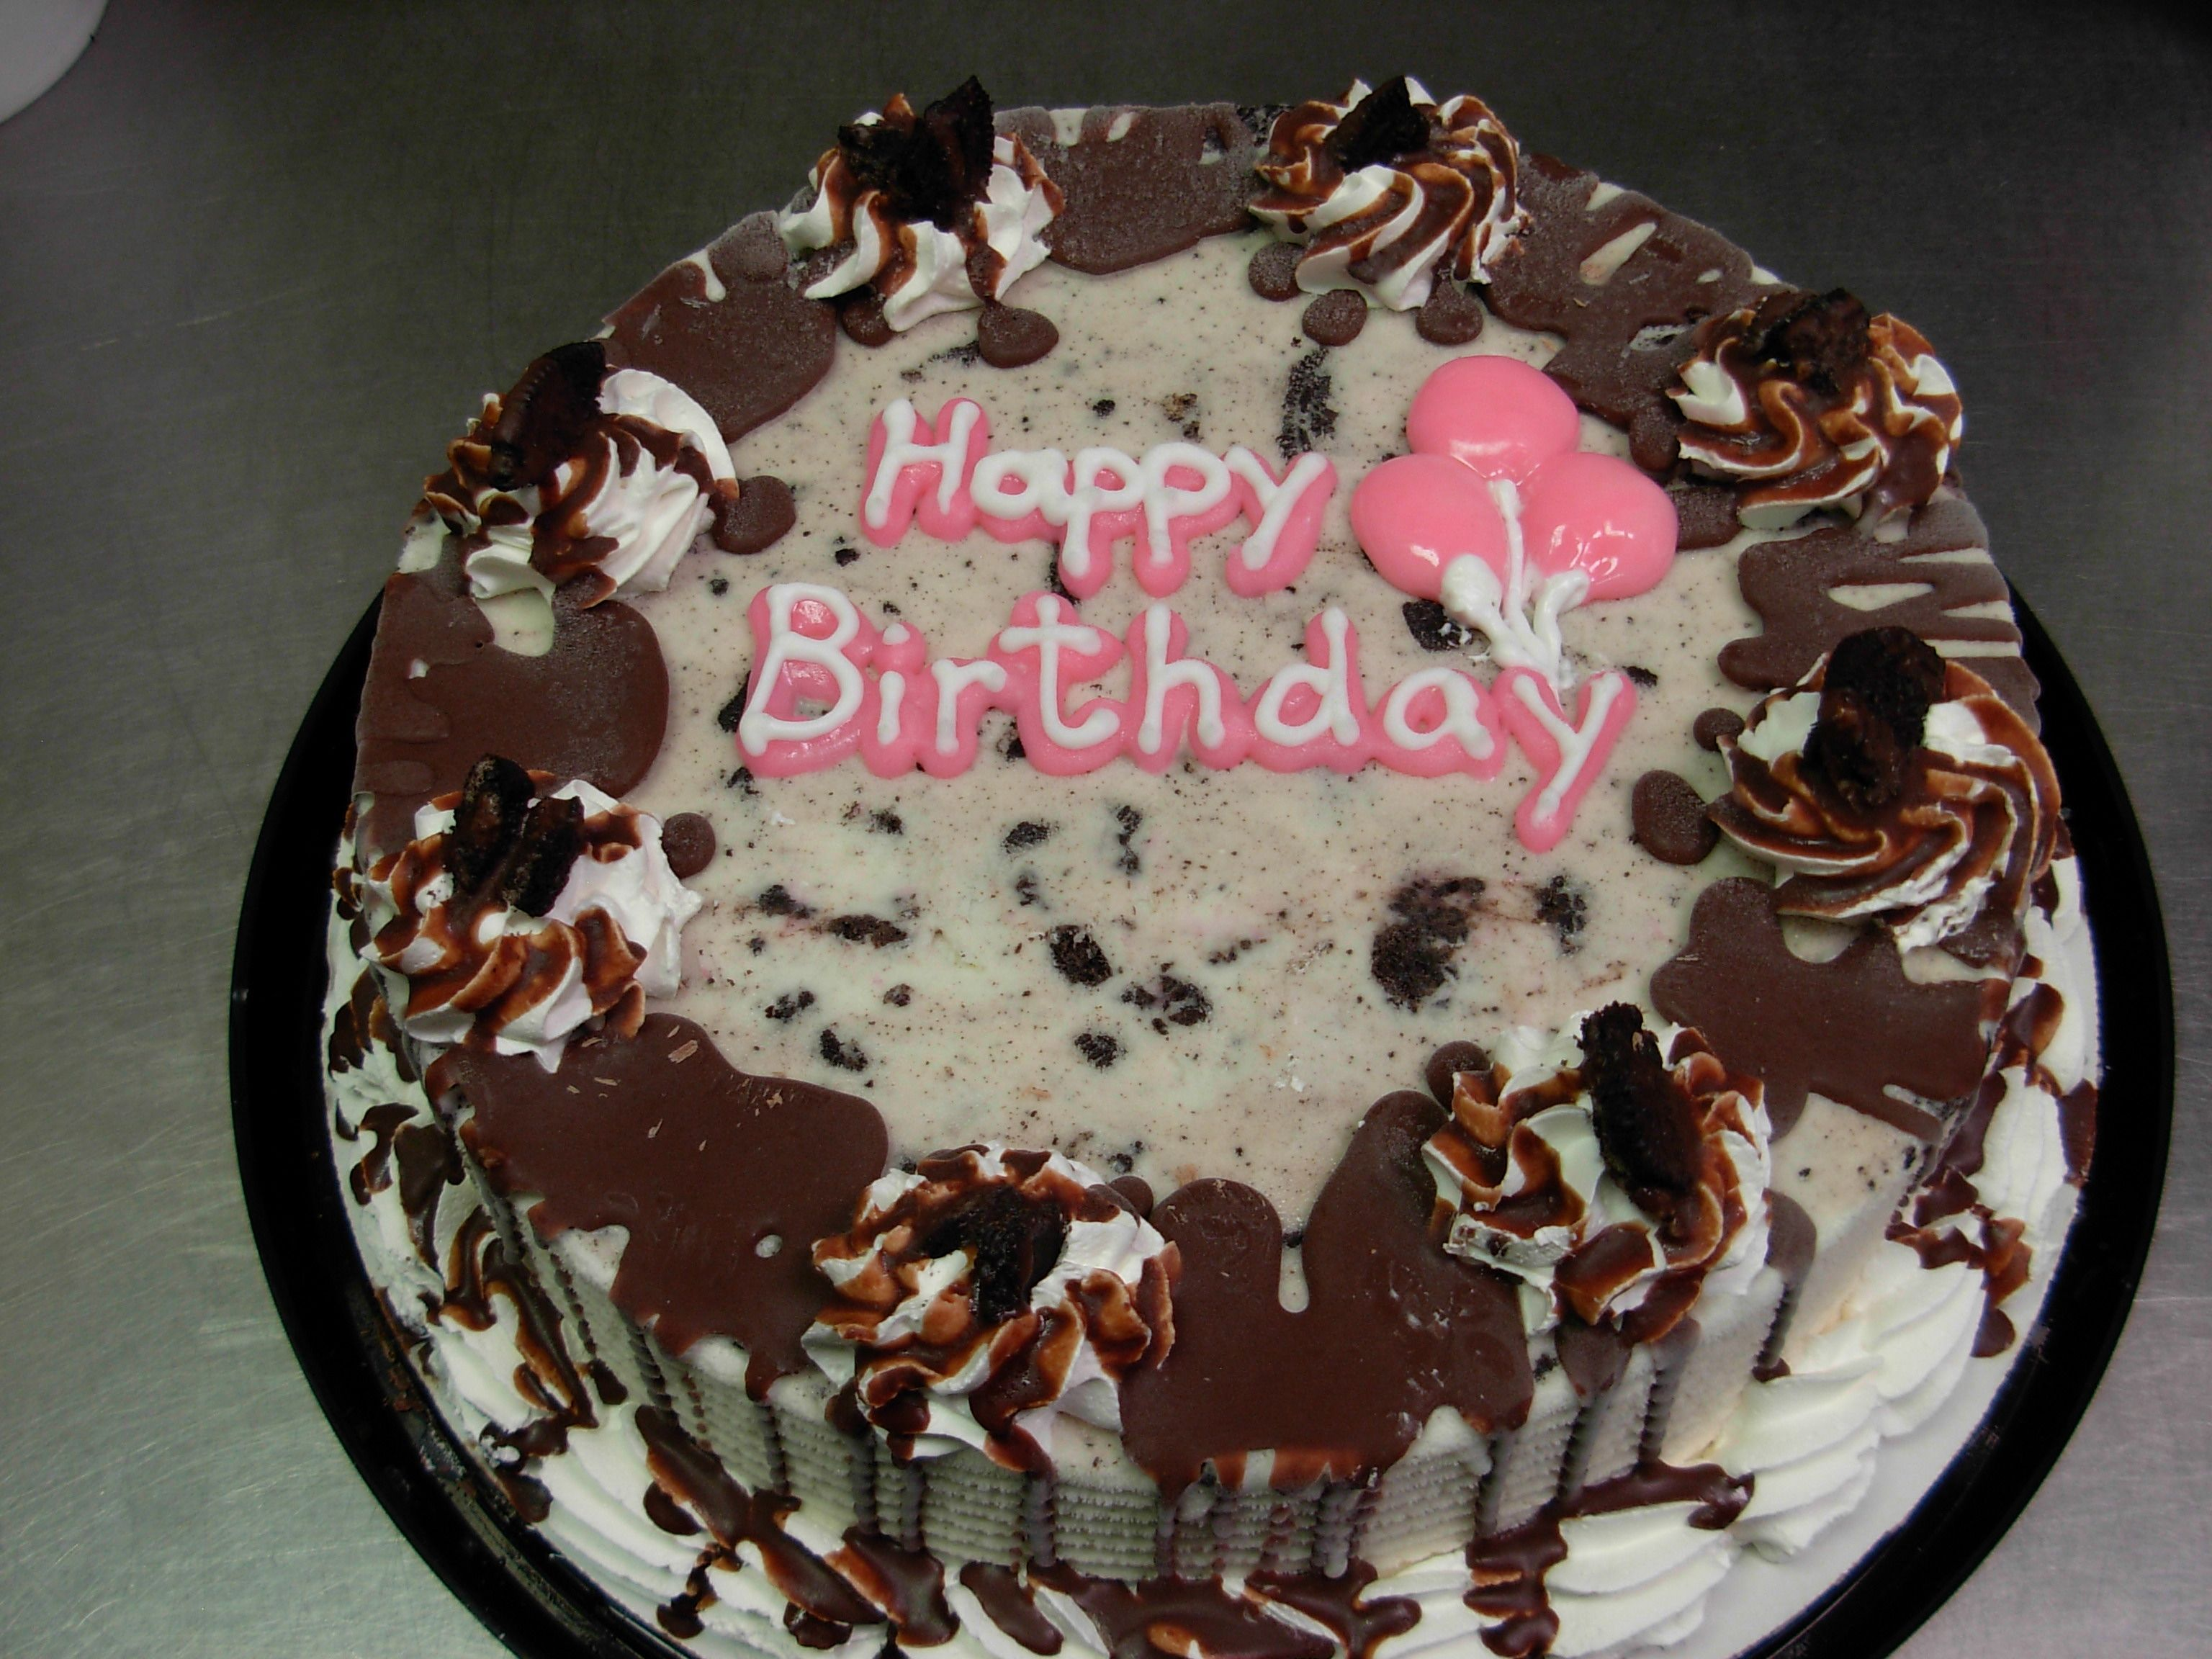 Birthday Decorations At Office Image Inspiration of Cake and